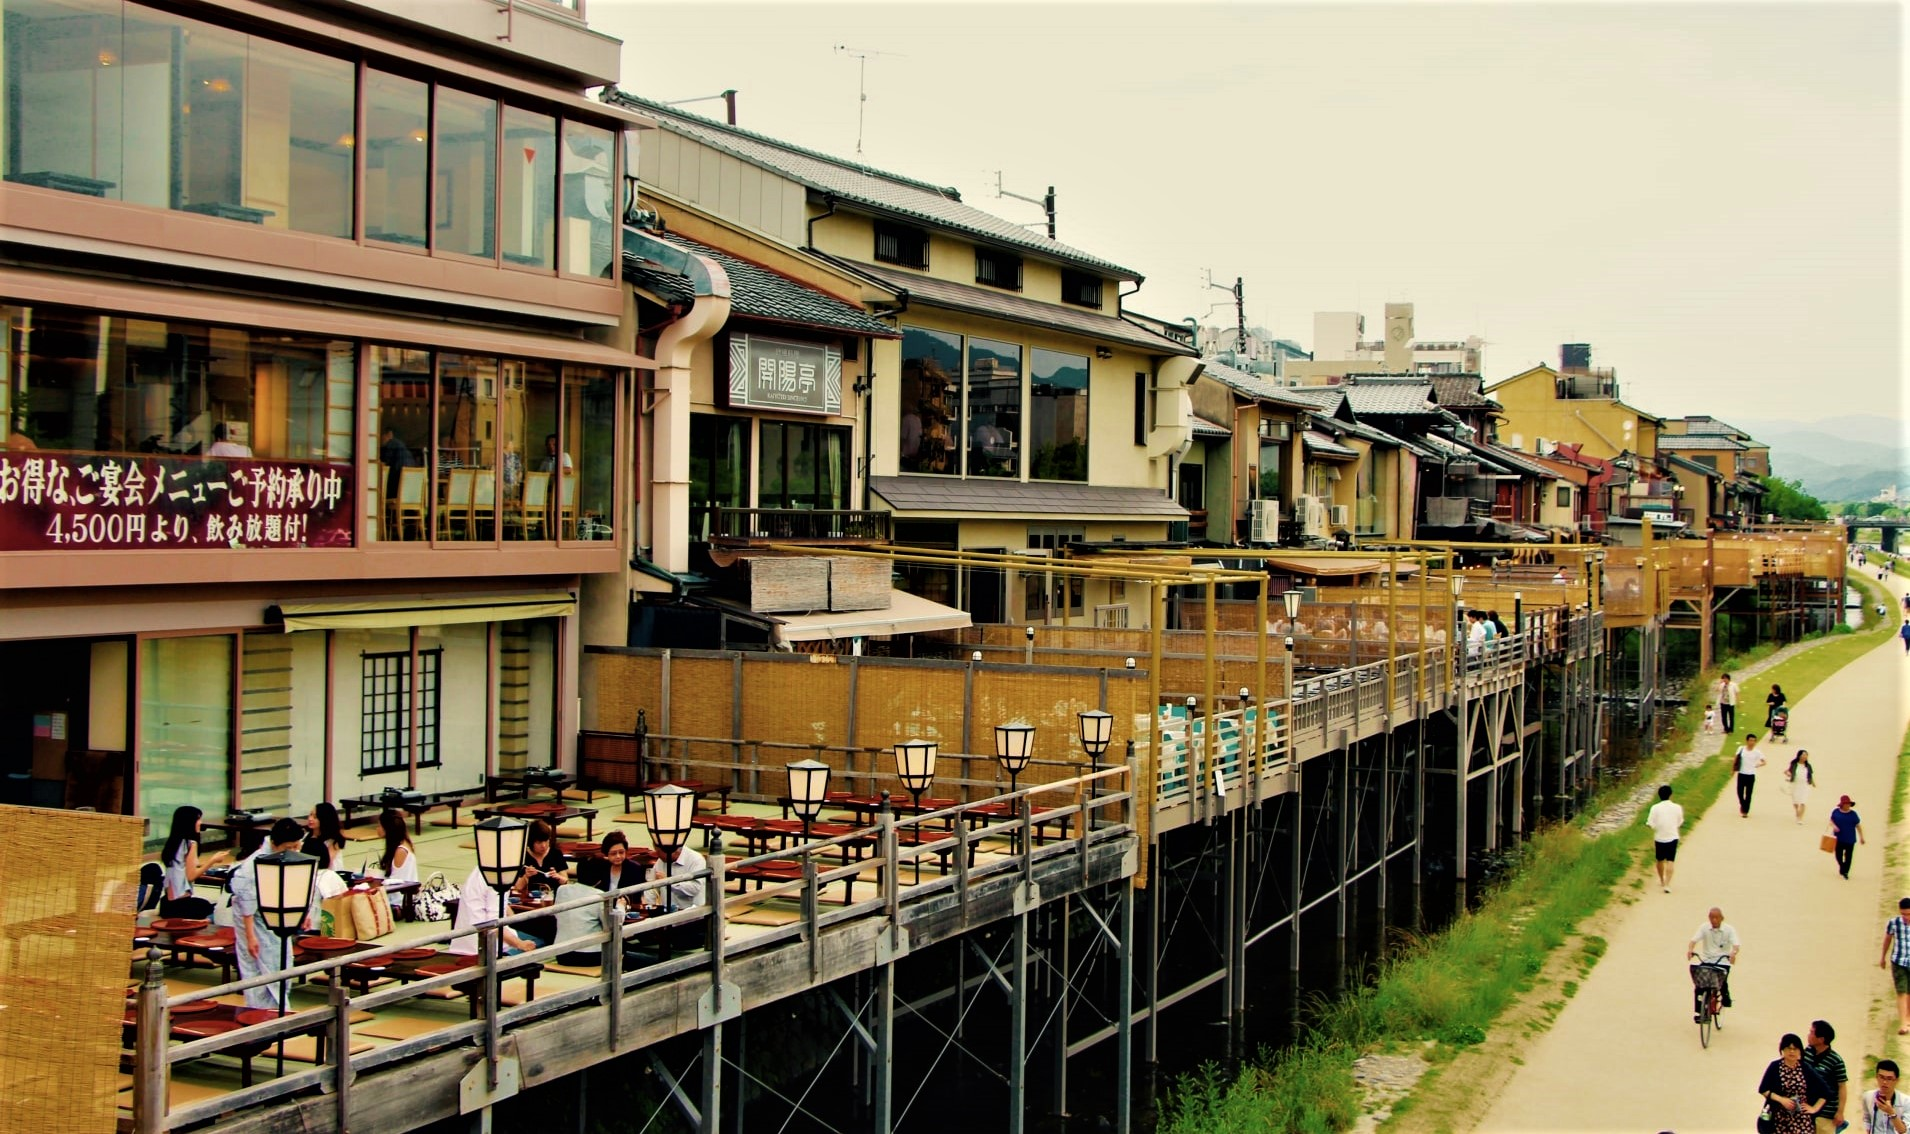 Cafes/restaurants with the Kawadoko terrace by Kamogawa River